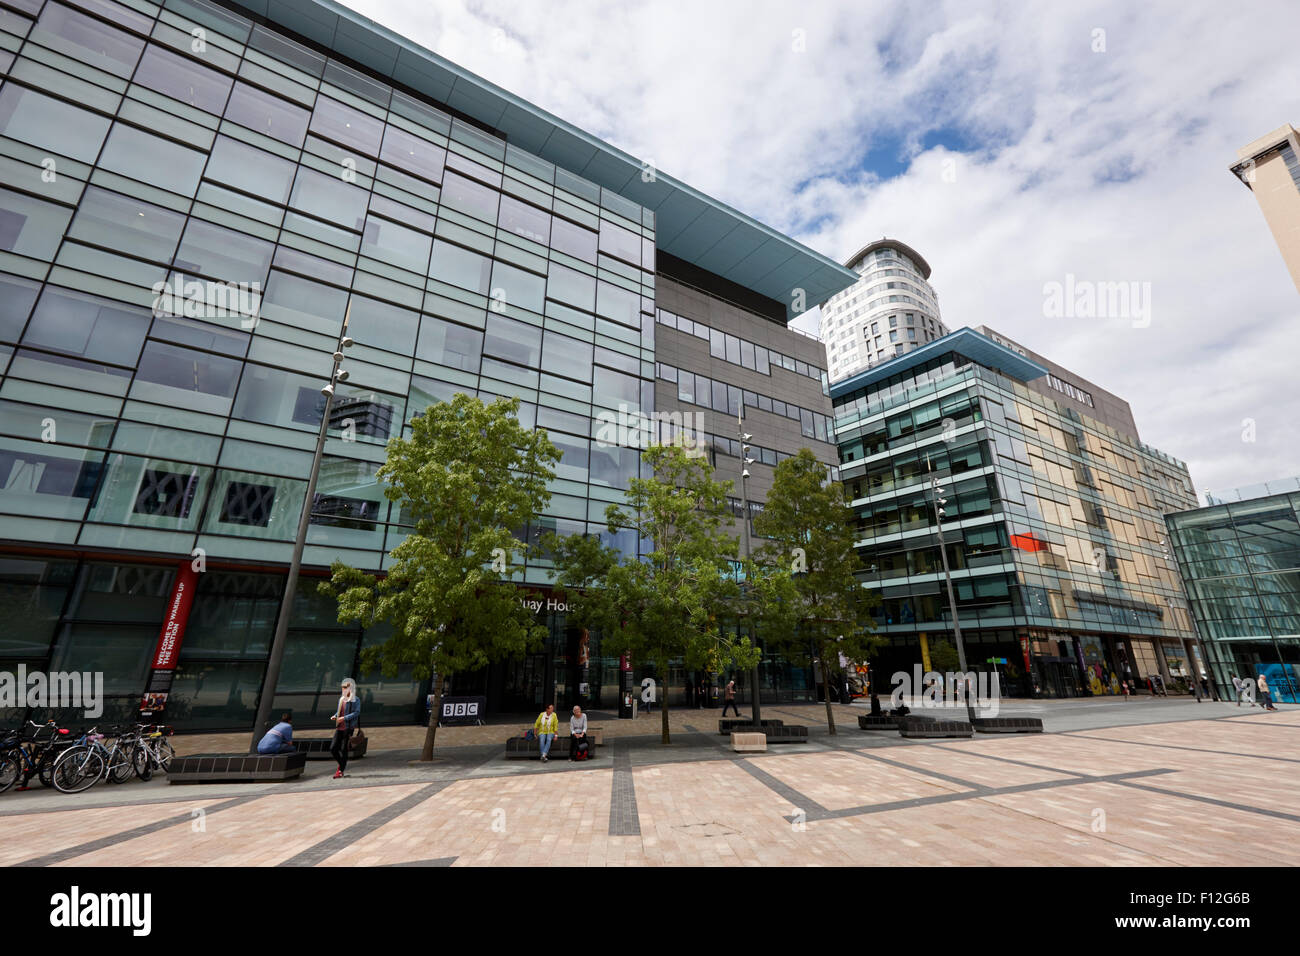 bbc quay and bridge house buildings mediacity salford Manchester uk - Stock Image